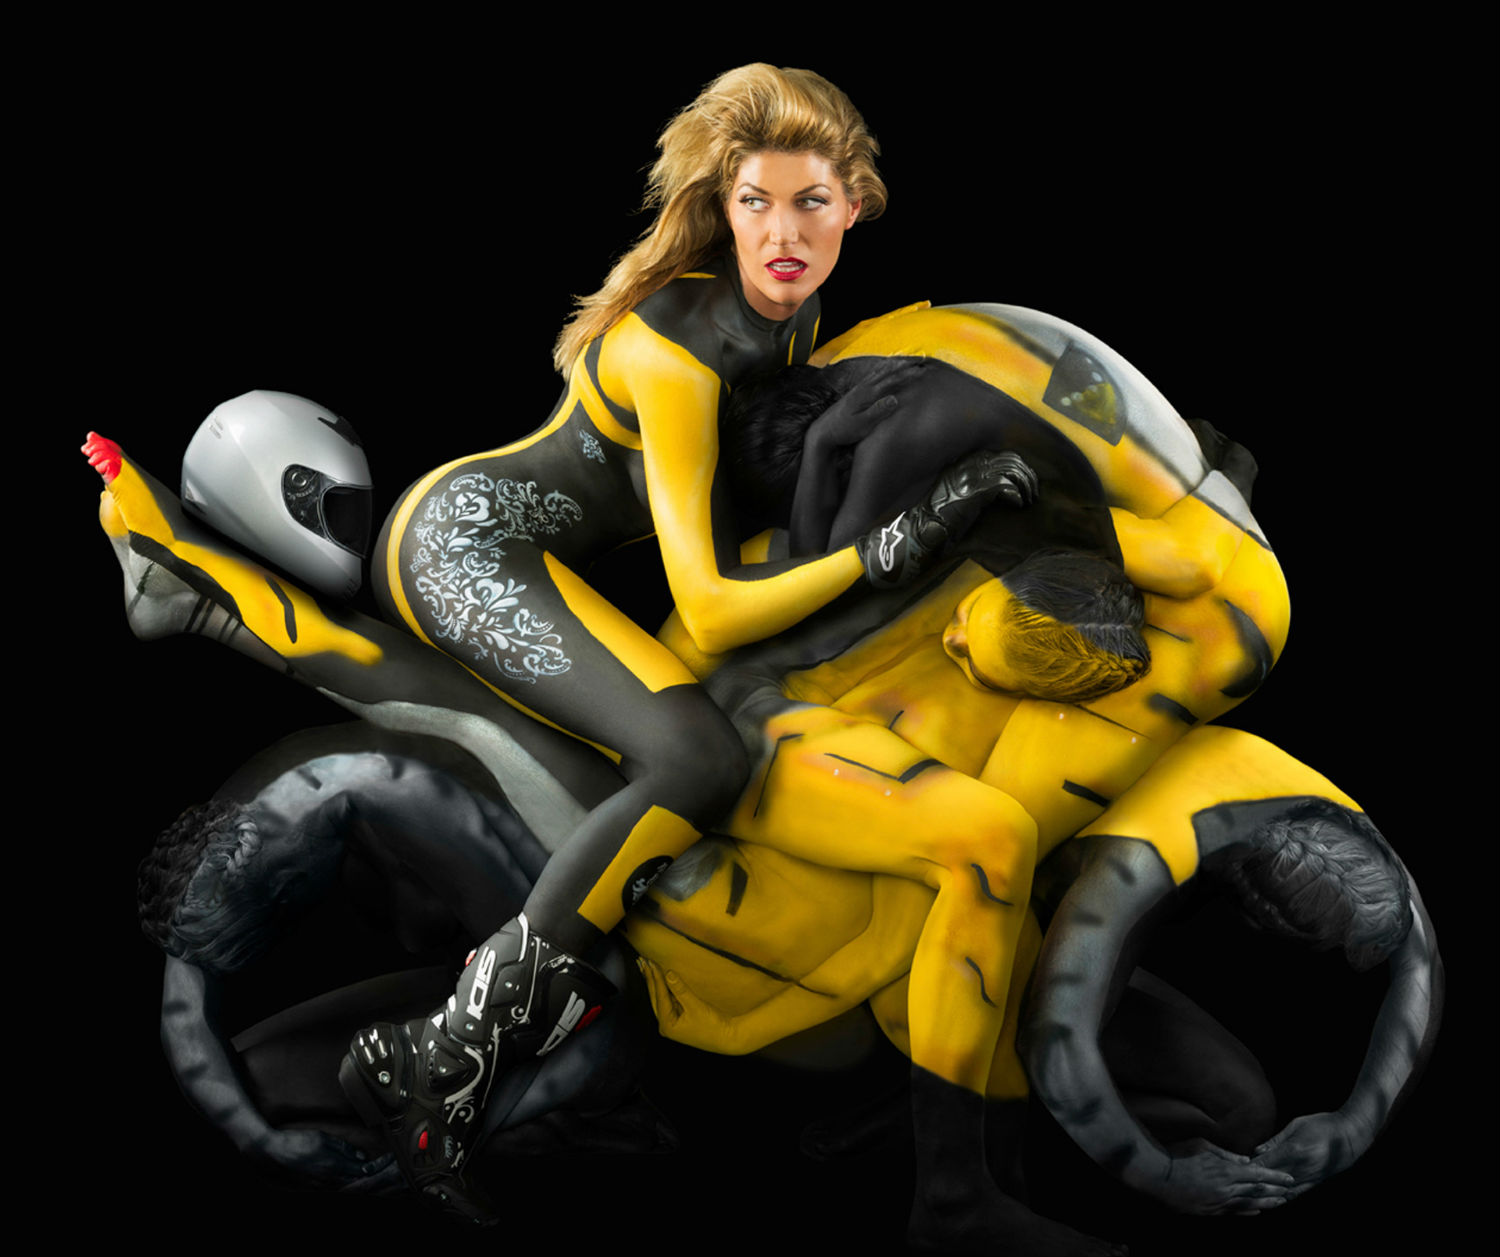 trina merry human motorcycle yellow